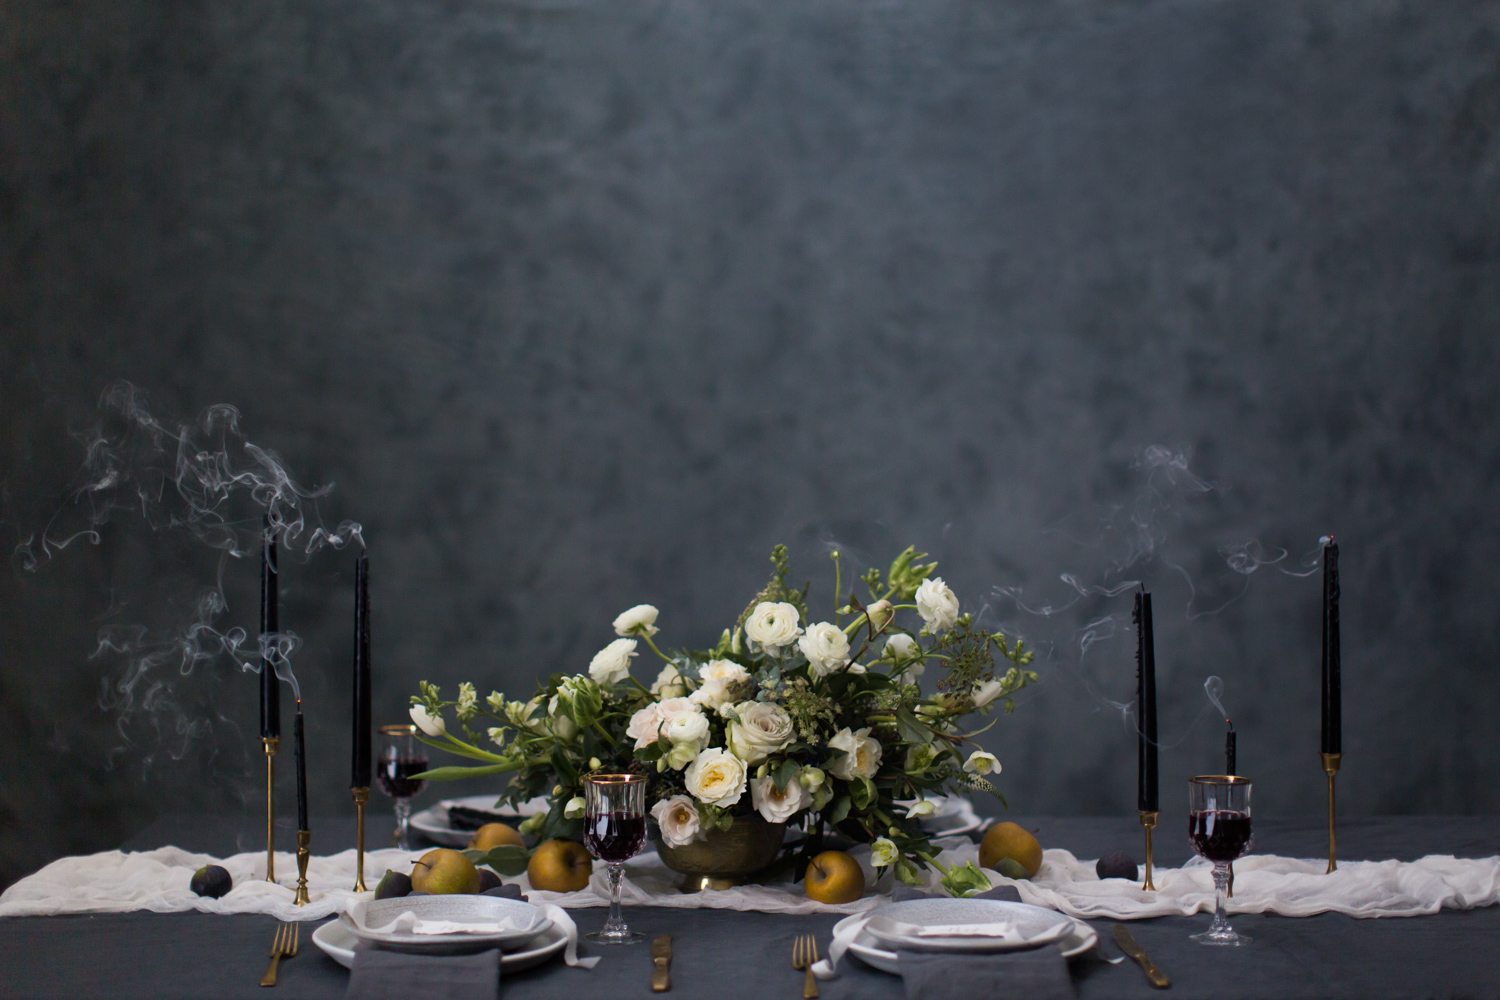 Tablescape with blownout candles and floral centrepiece by A Fine Medley